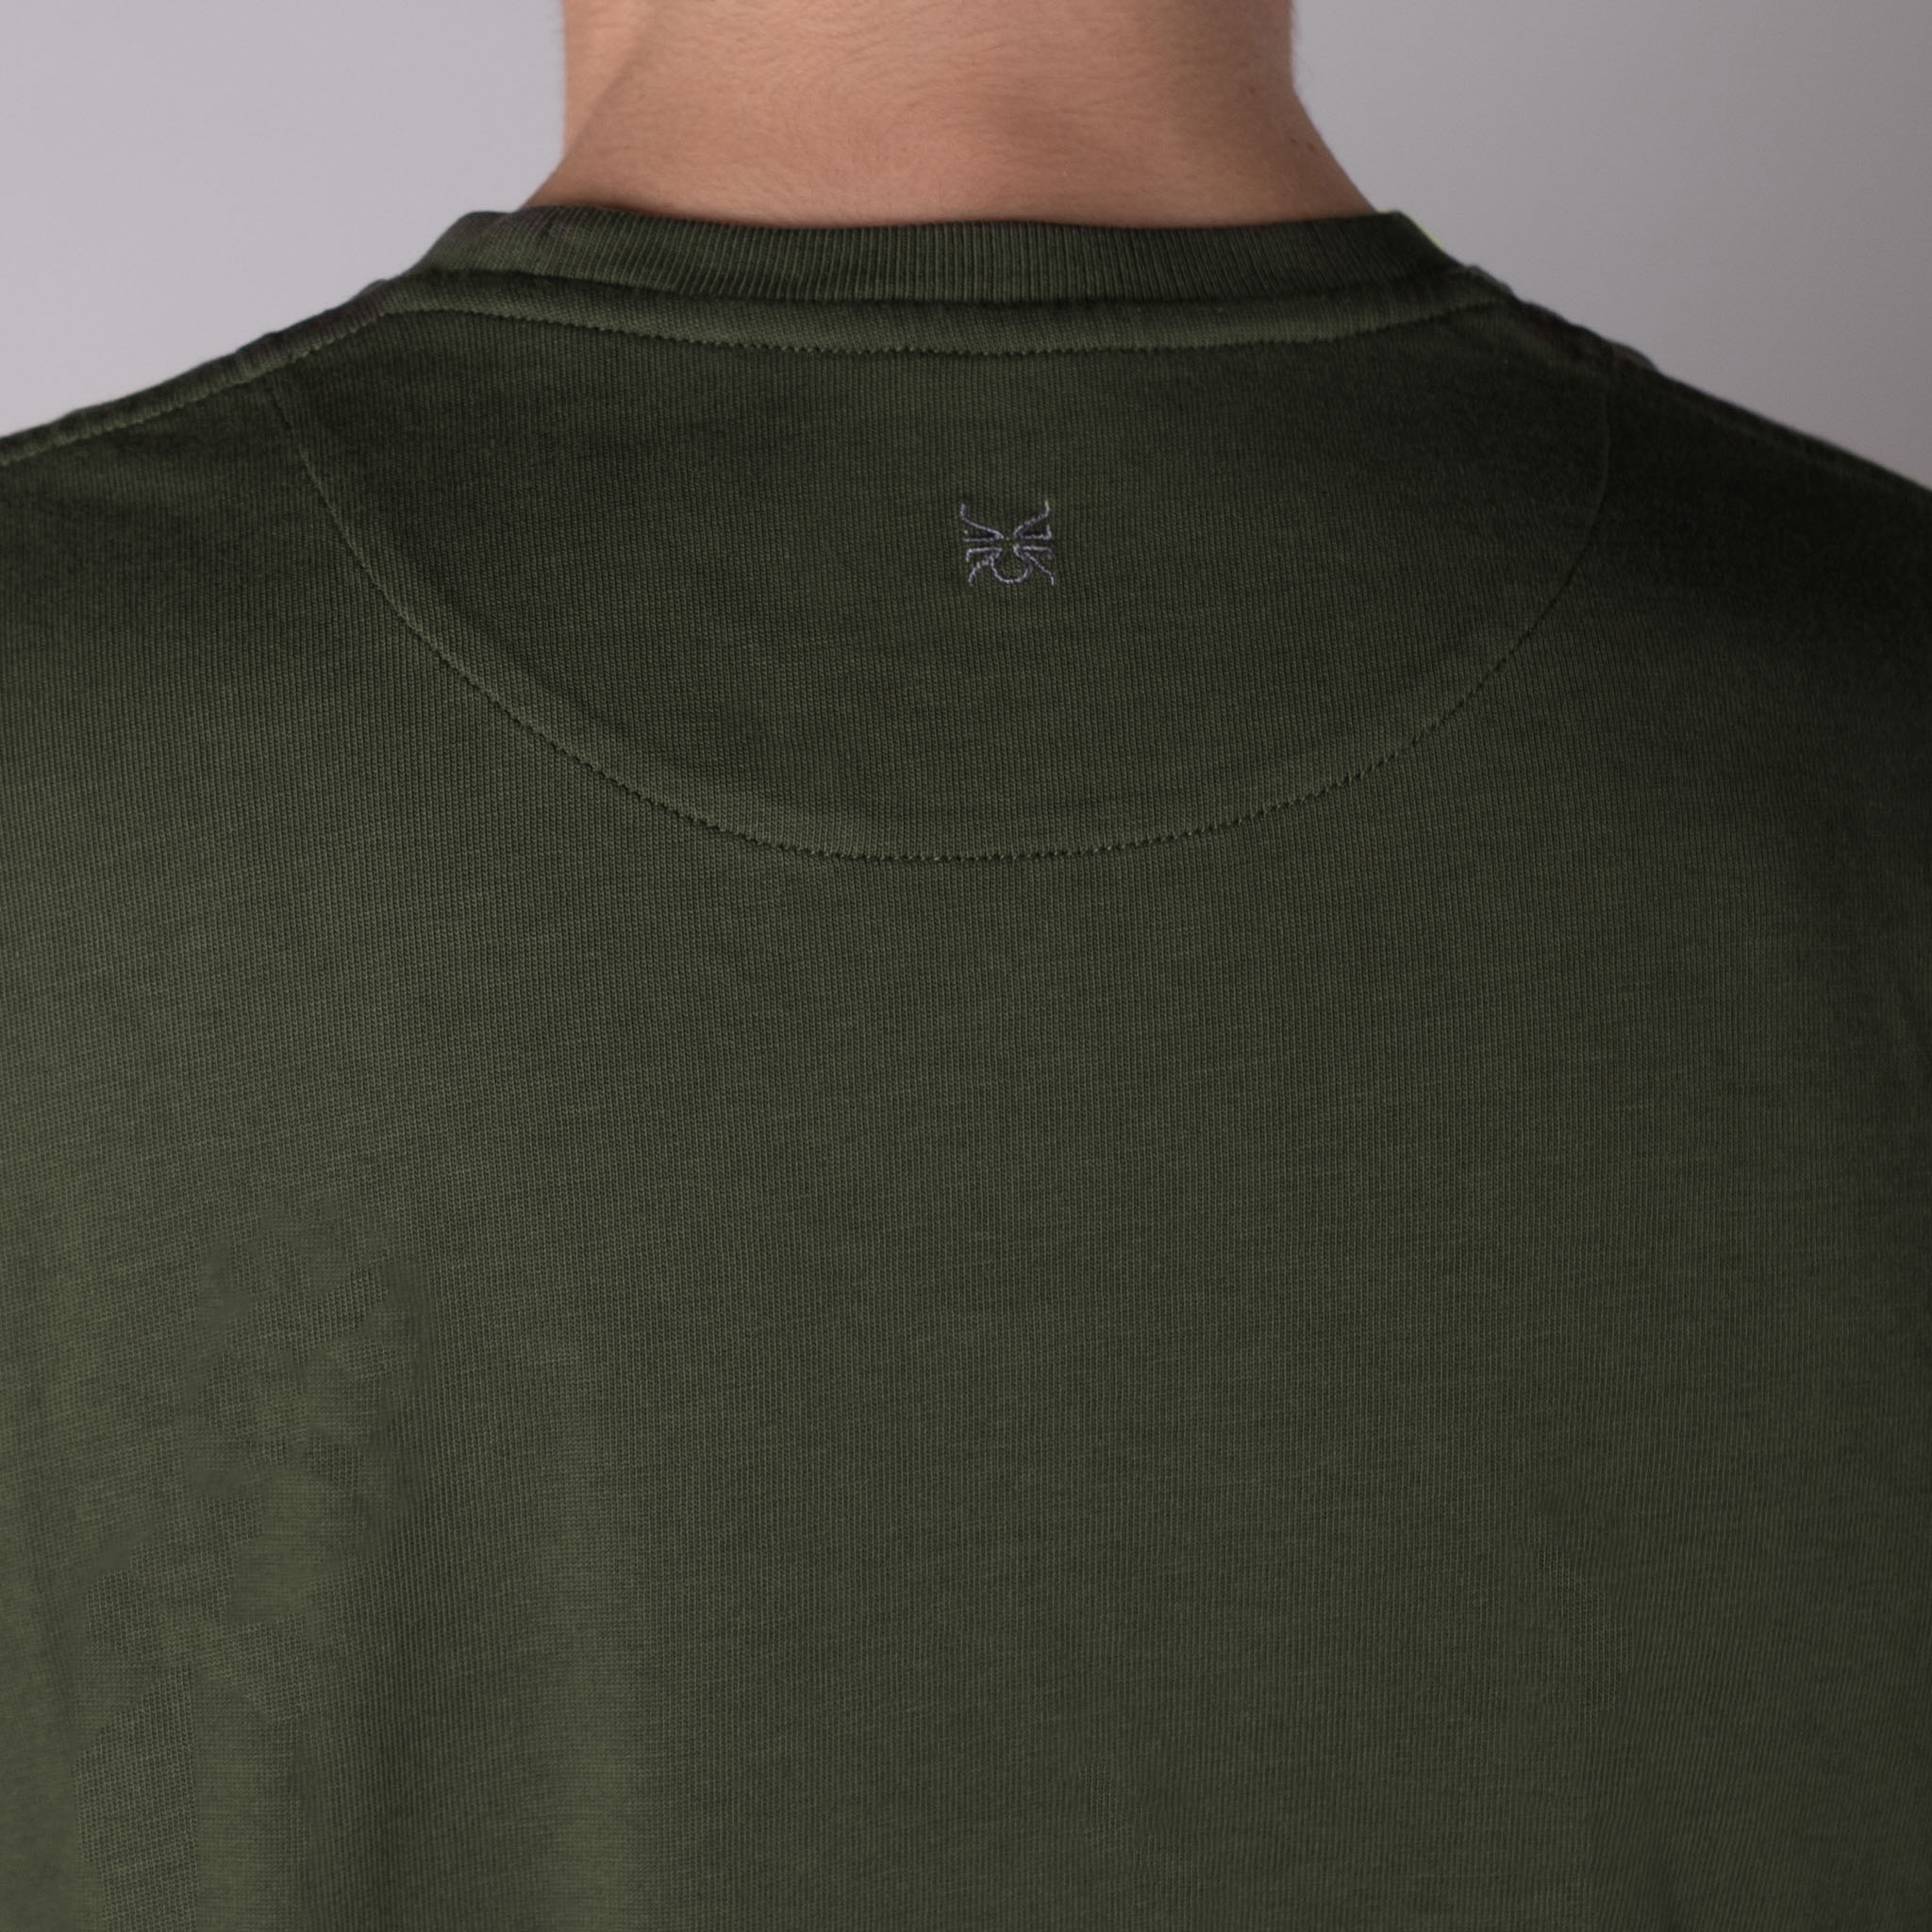 T-SHIRT-02-·-03-VERDE-The-Seëlk 3